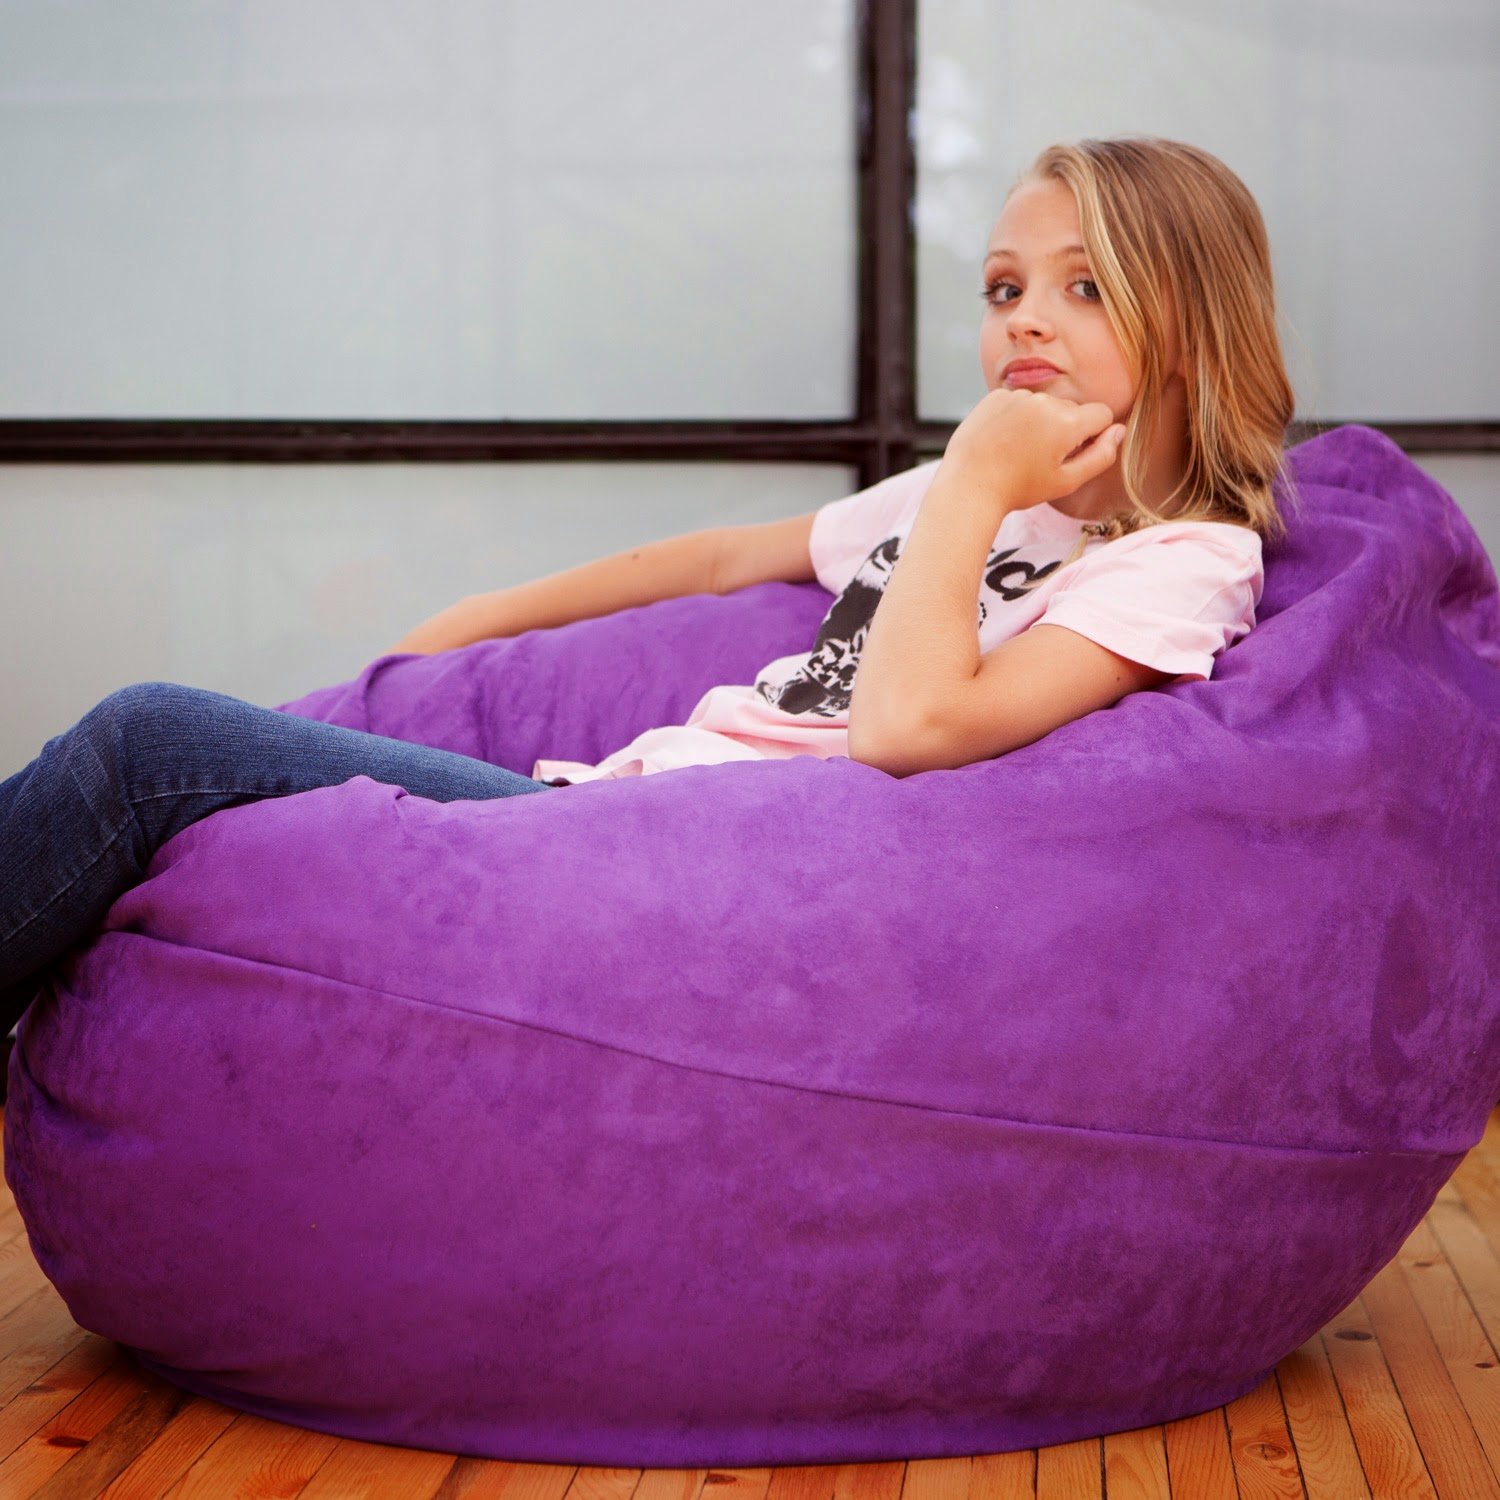 It Doesnu0027t Always Matter If The Chair Is Big Or Small; The Cuddly Softness  Of Bean Bag Chairs Appeals To Kids. The Bean Bag Lets Them Settle In And  They ...